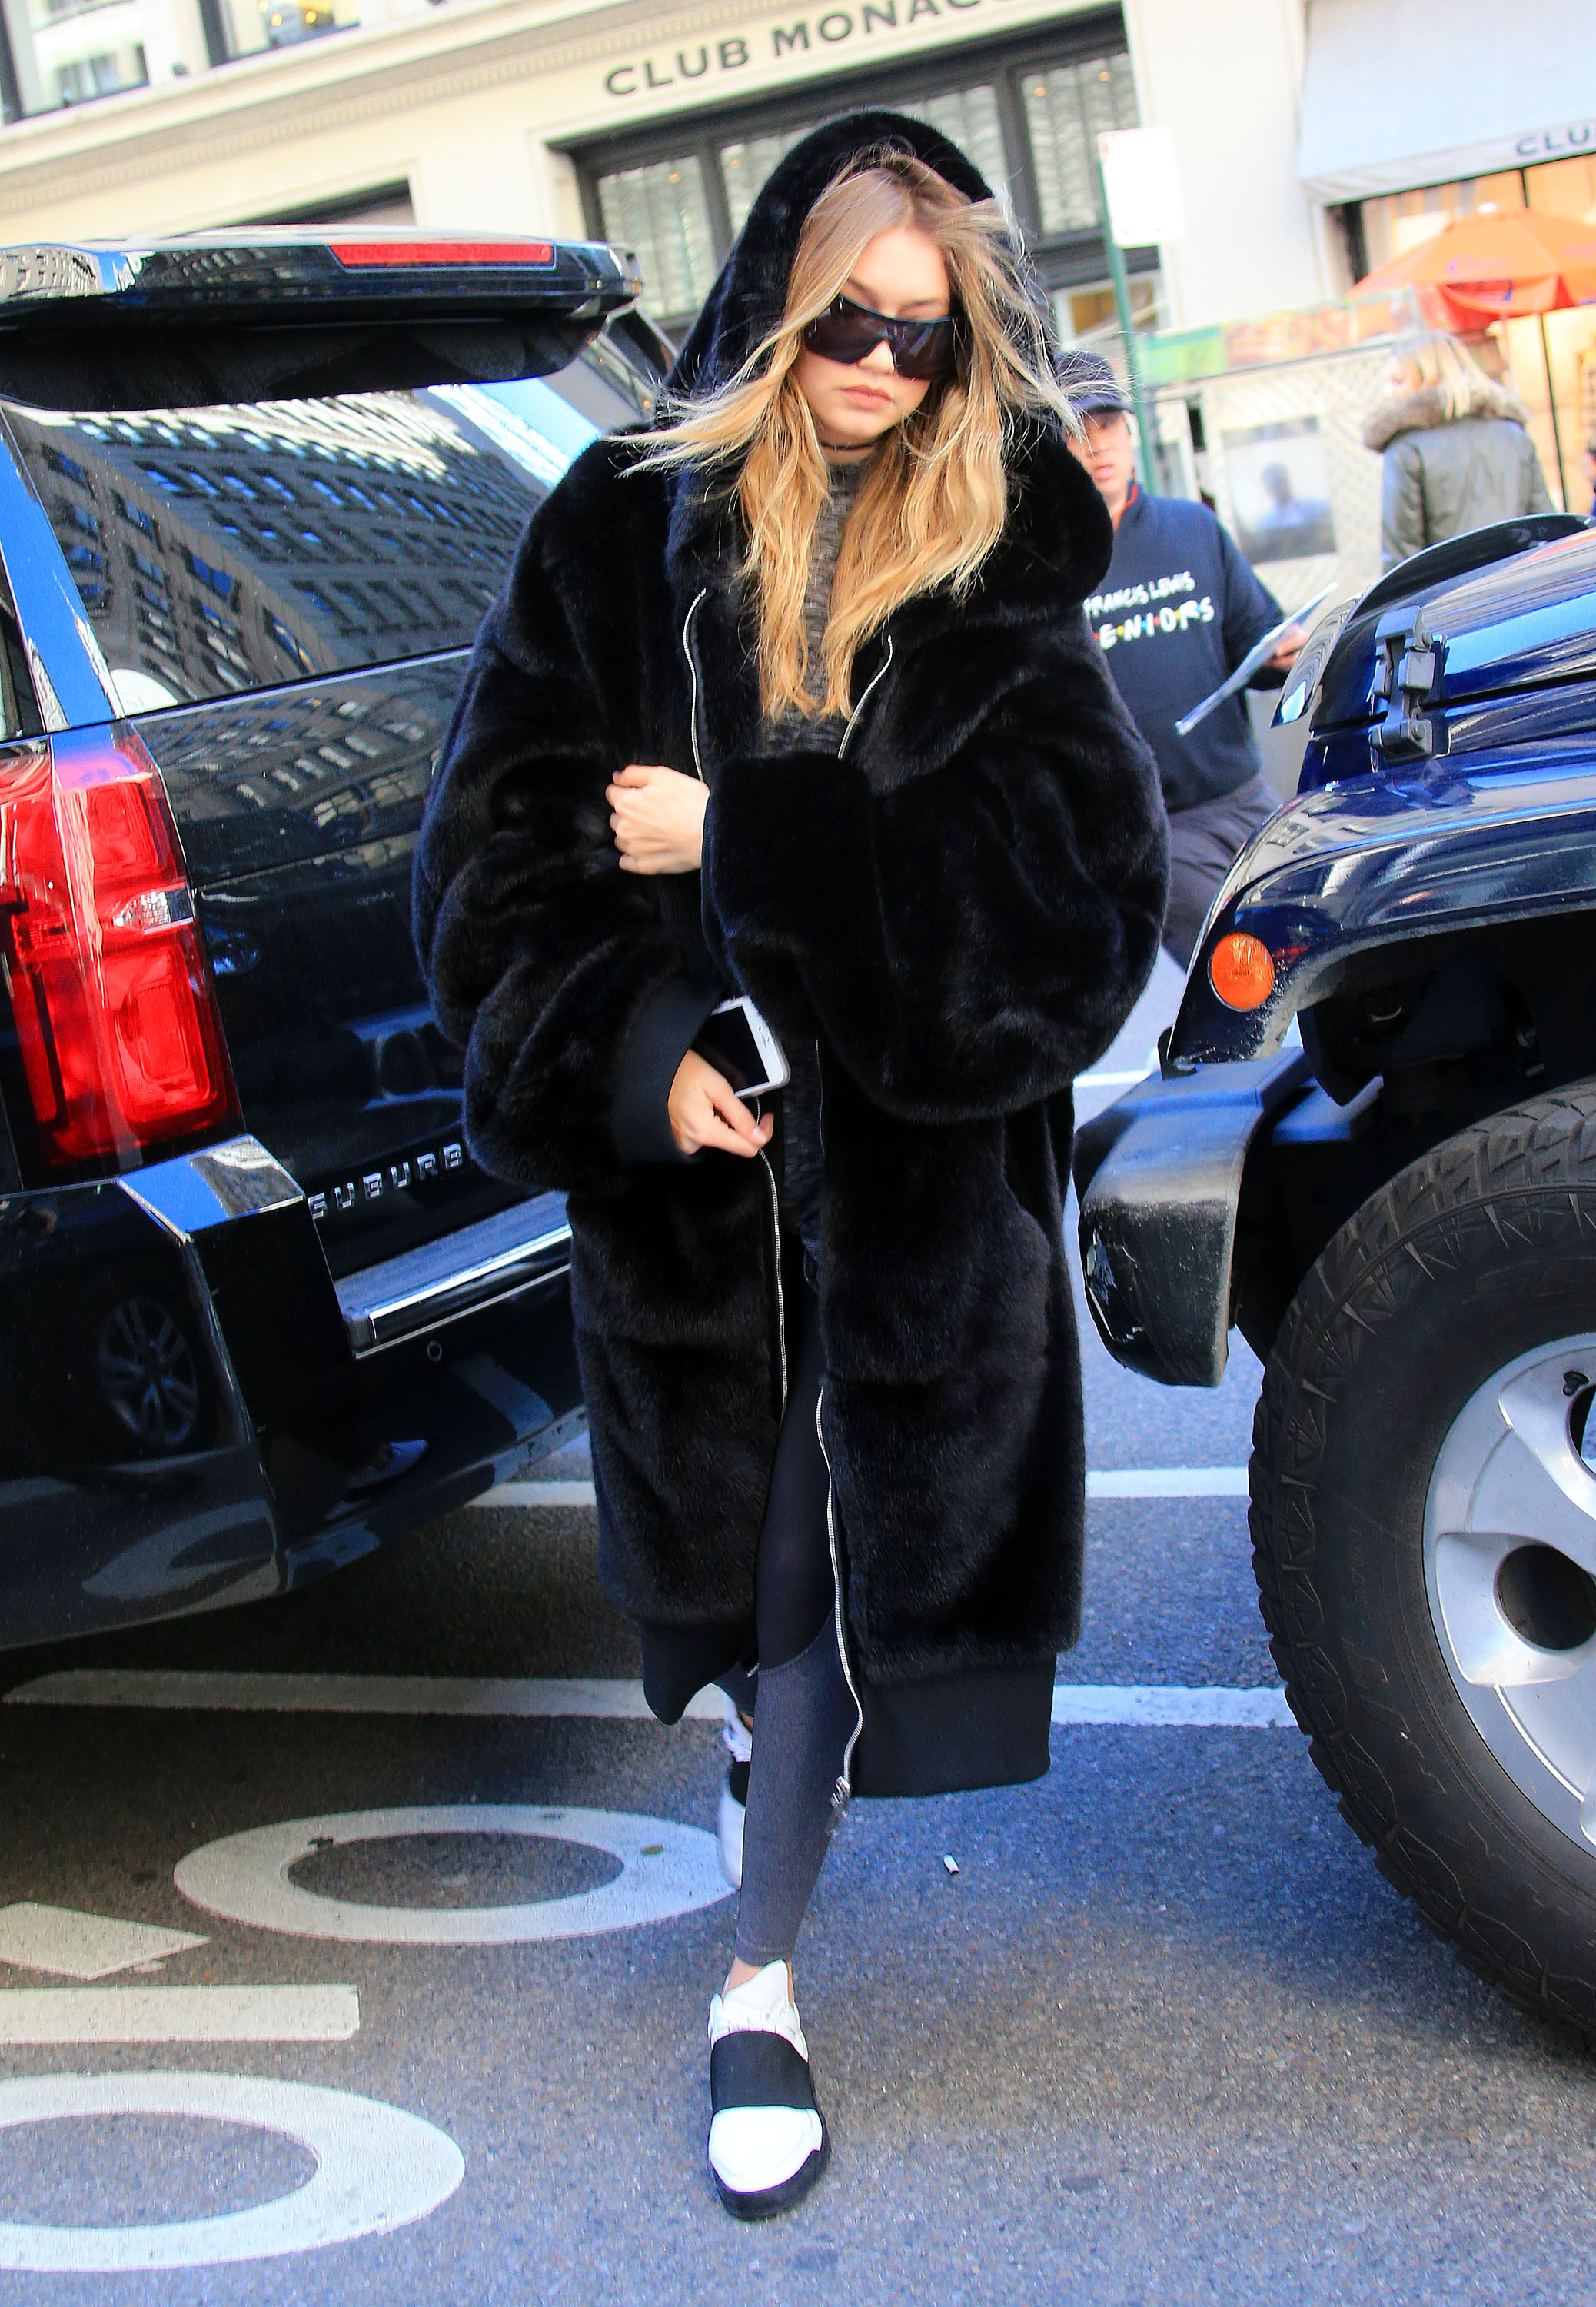 Gigi Hadid maneuvers her way in between Midtown Manhattan traffic in NYC Pictured: Gigi Hadid Ref: SPL1248385 170316 Picture by: Jackson Lee / Splash News Splash News and Pictures Los Angeles:310-821-2666 New York: 212-619-2666 London: 870-934-2666 photodesk@splashnews.com